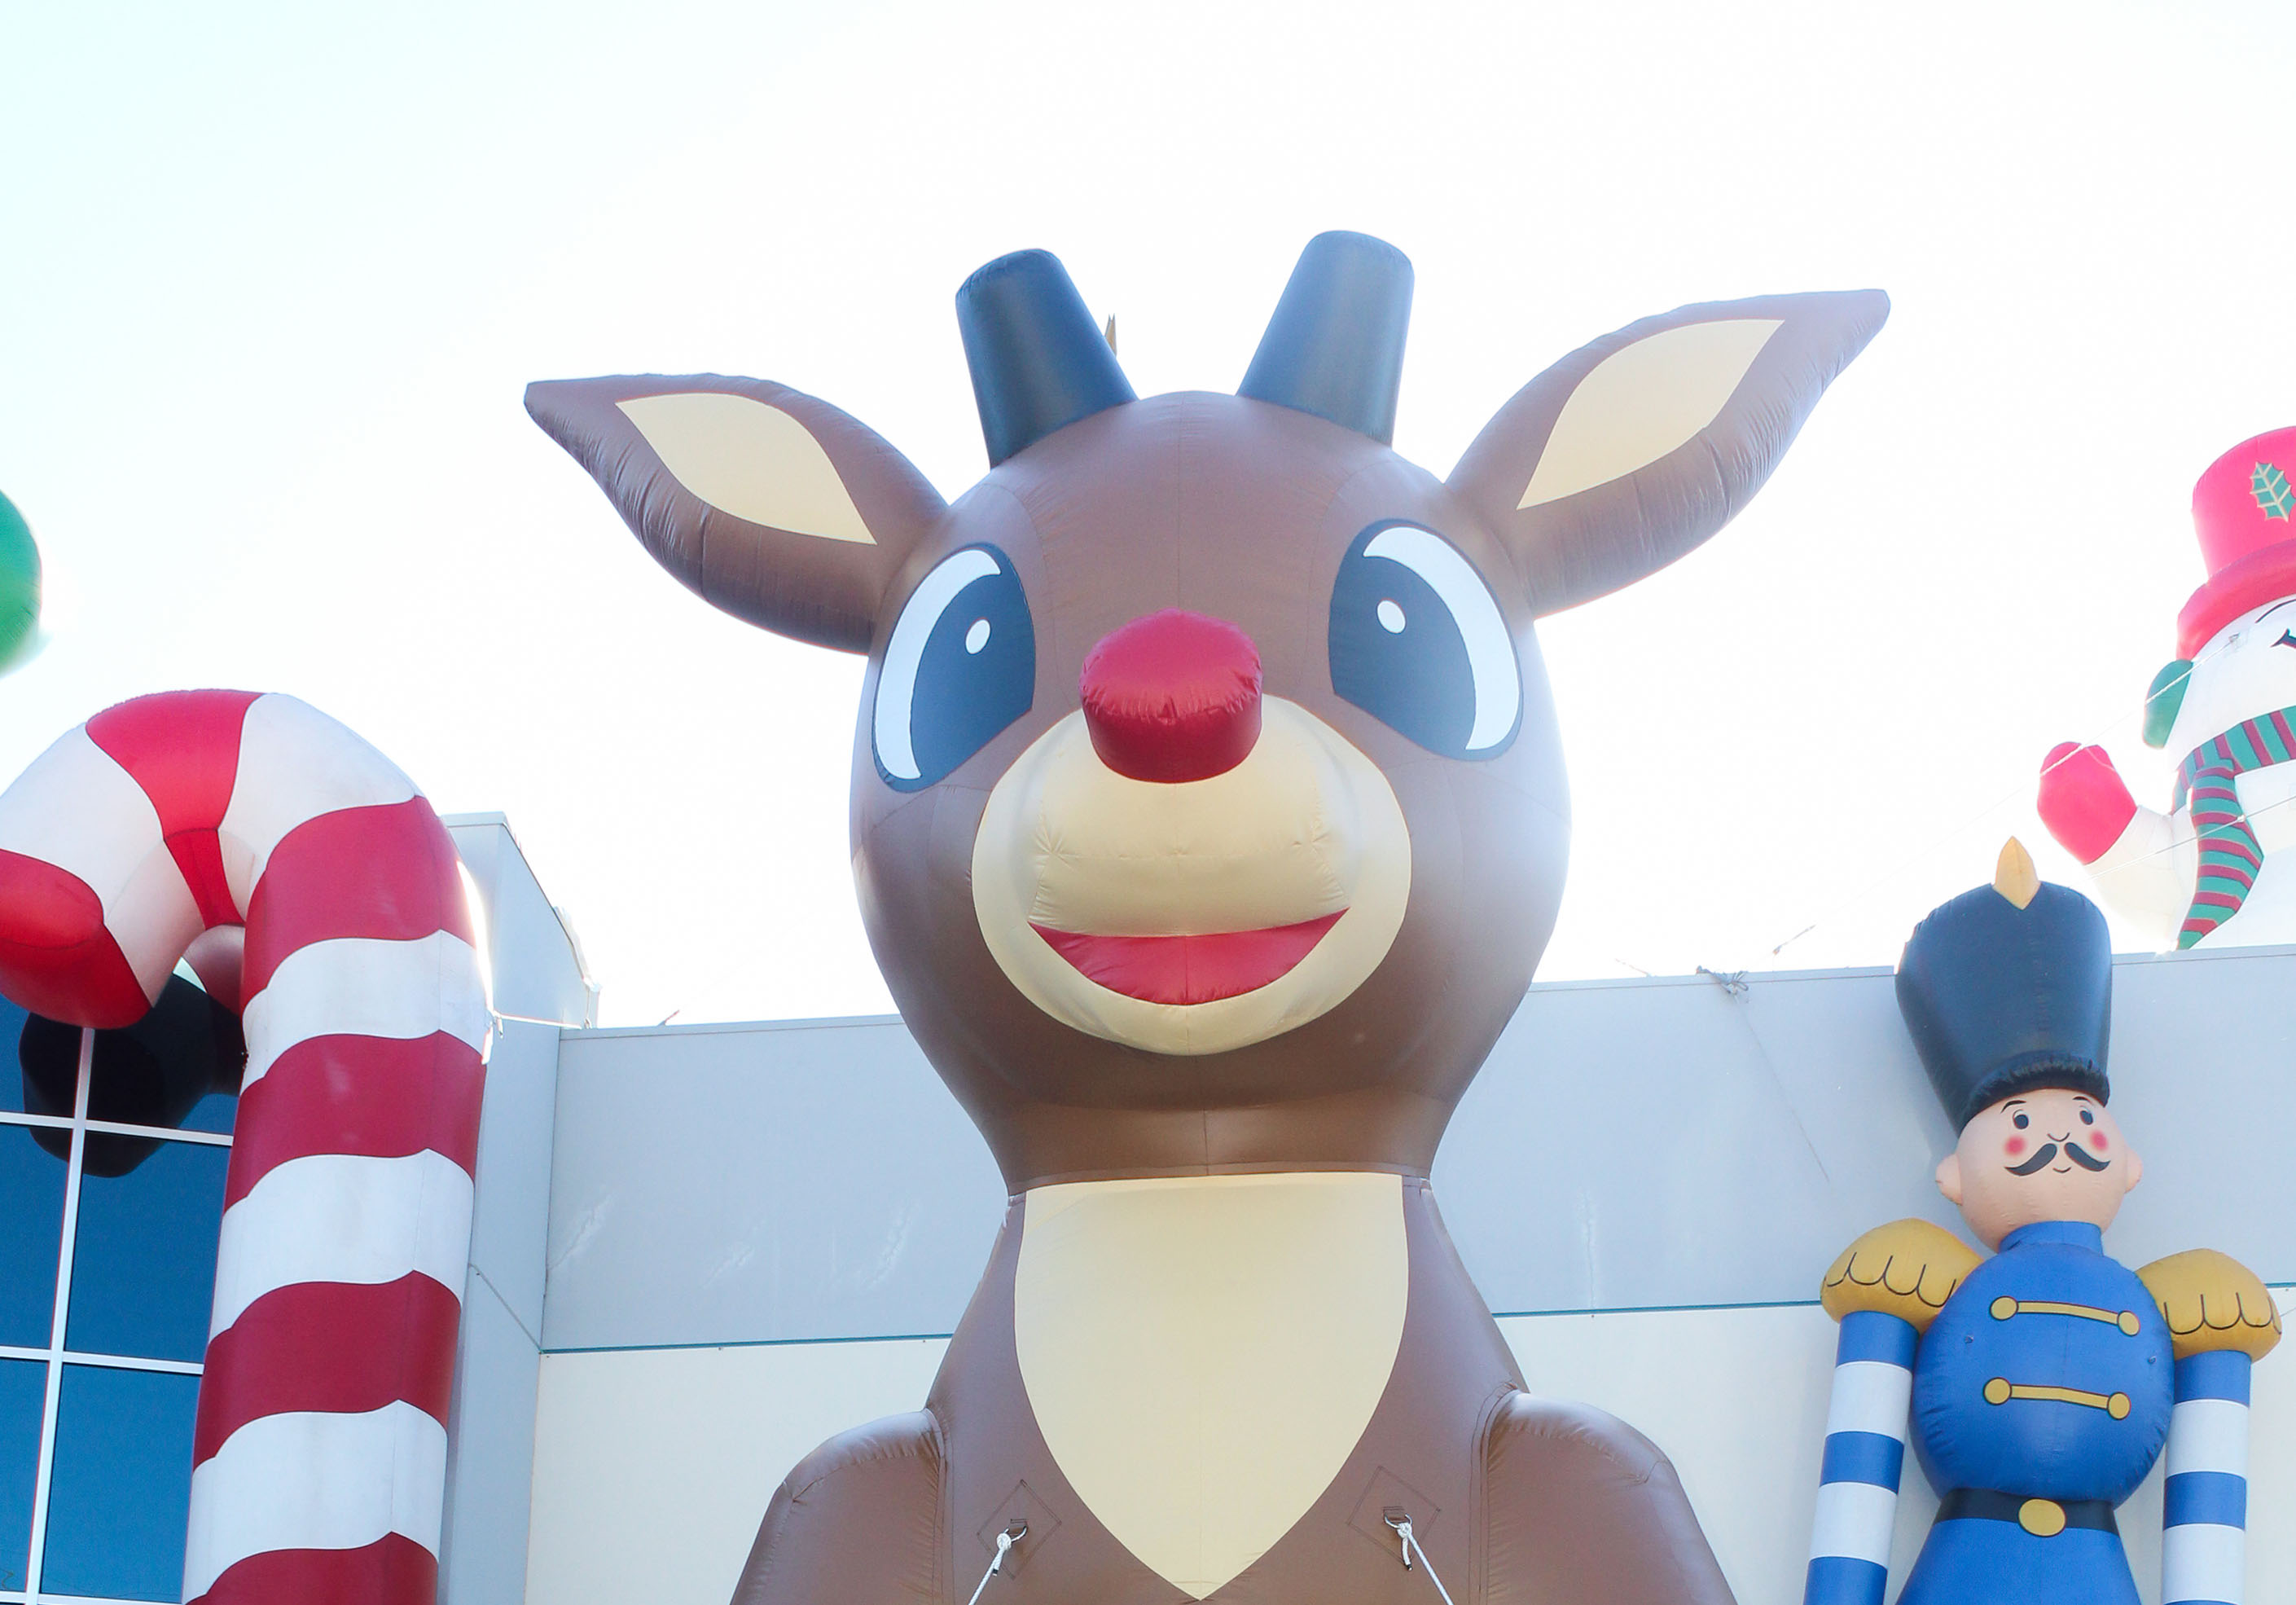 rudolph-the-red-nose-reindeer-header.jpg